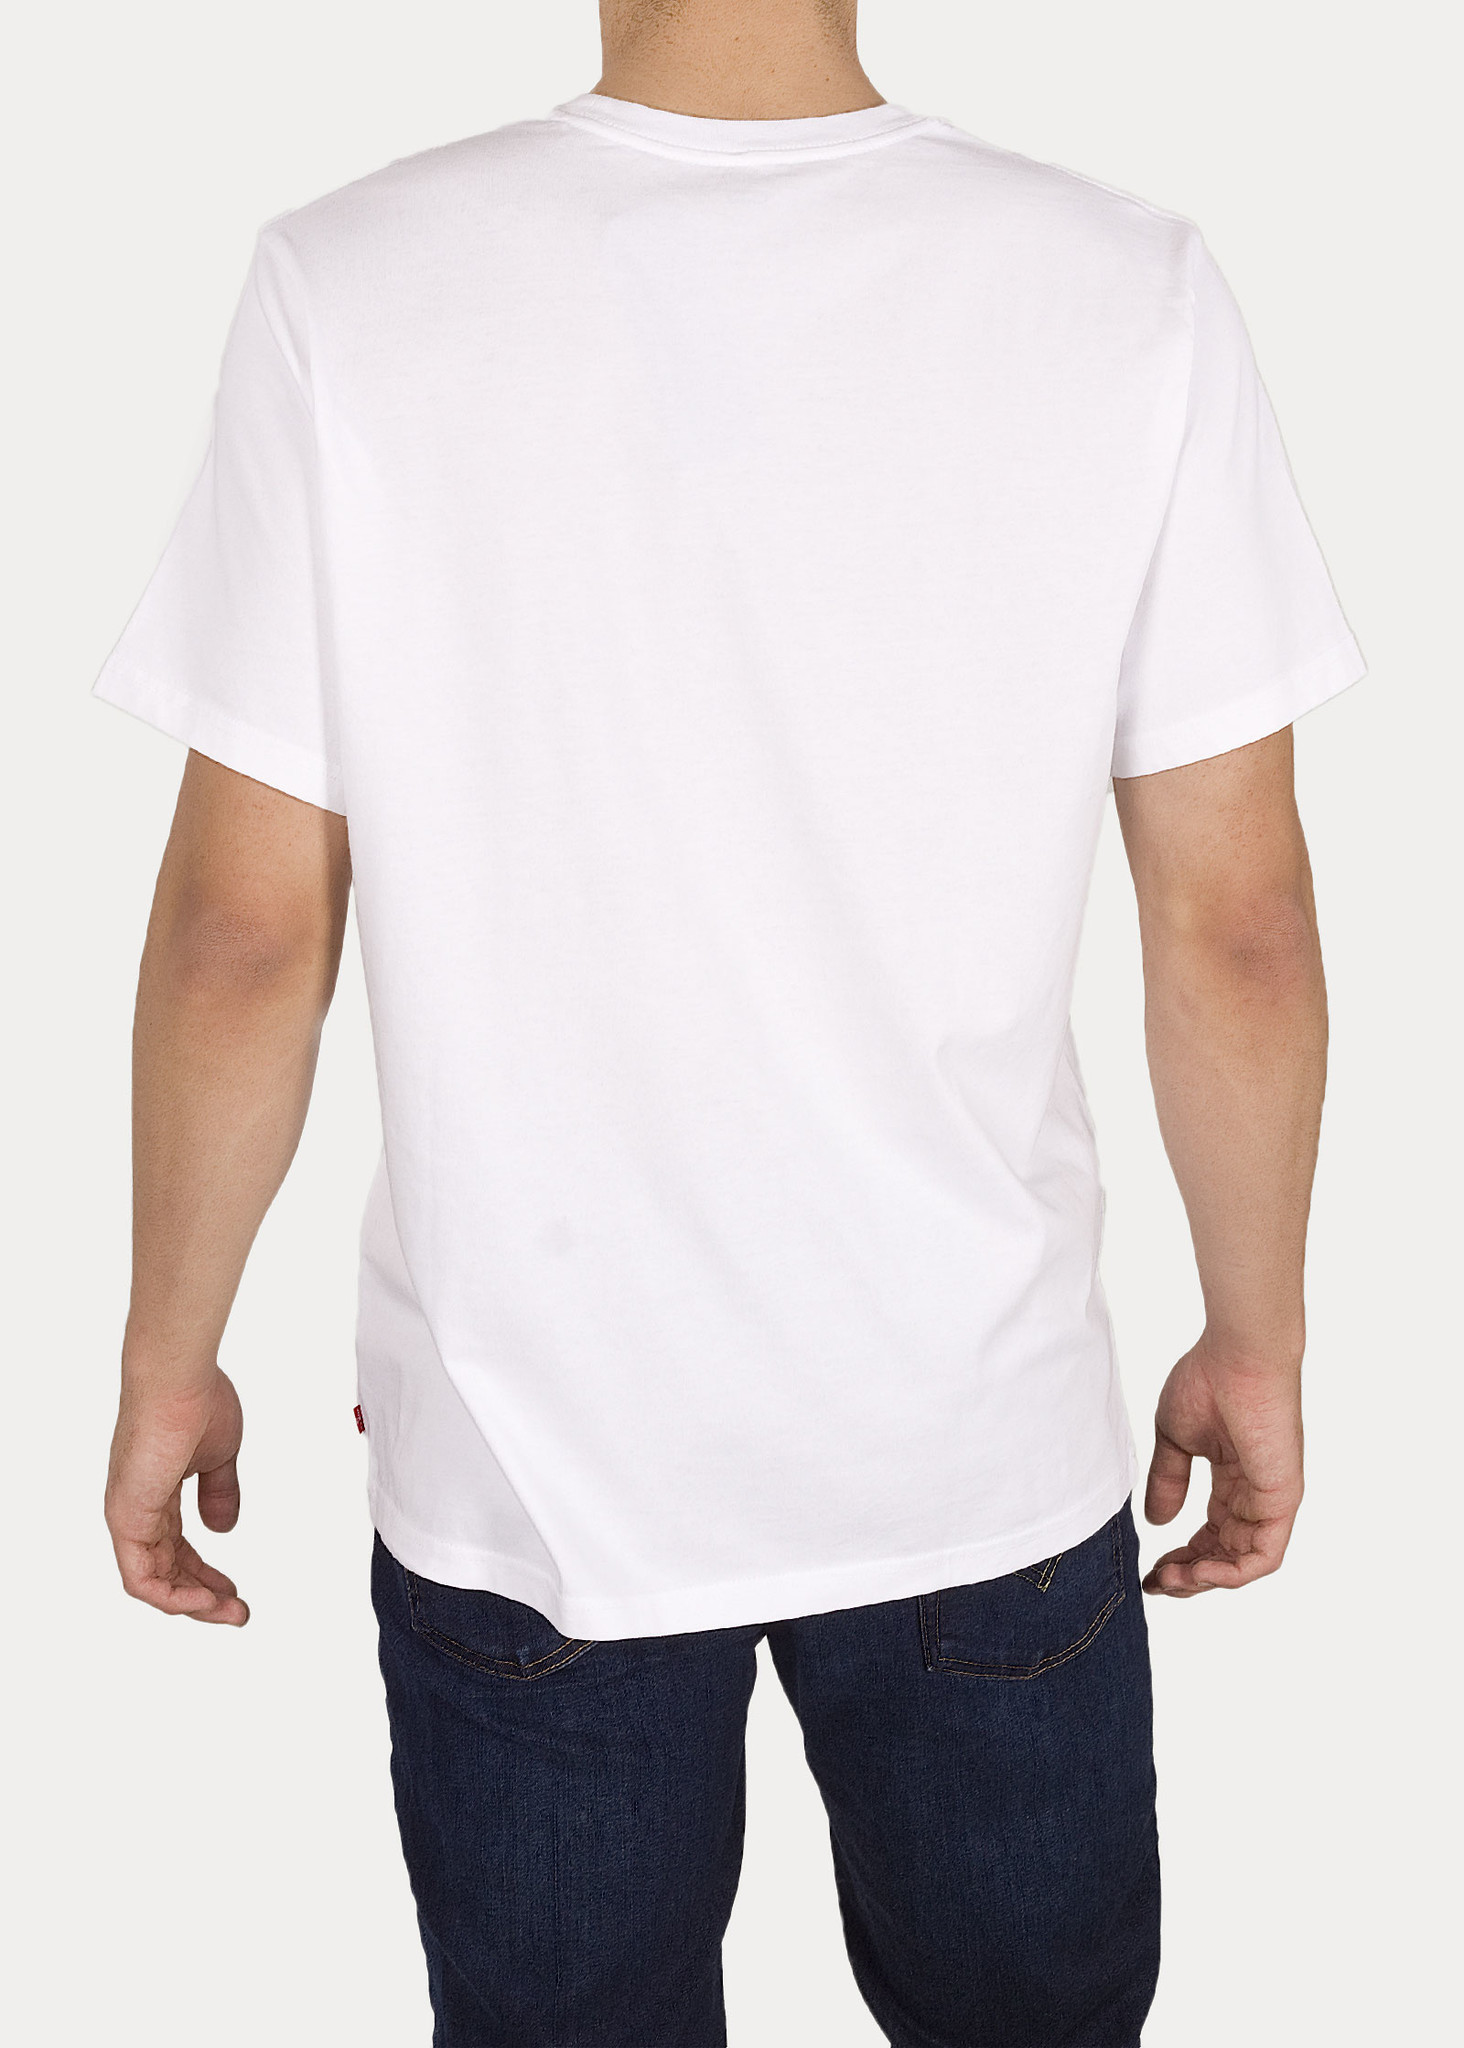 LEVIS relaxed graphic tee-4